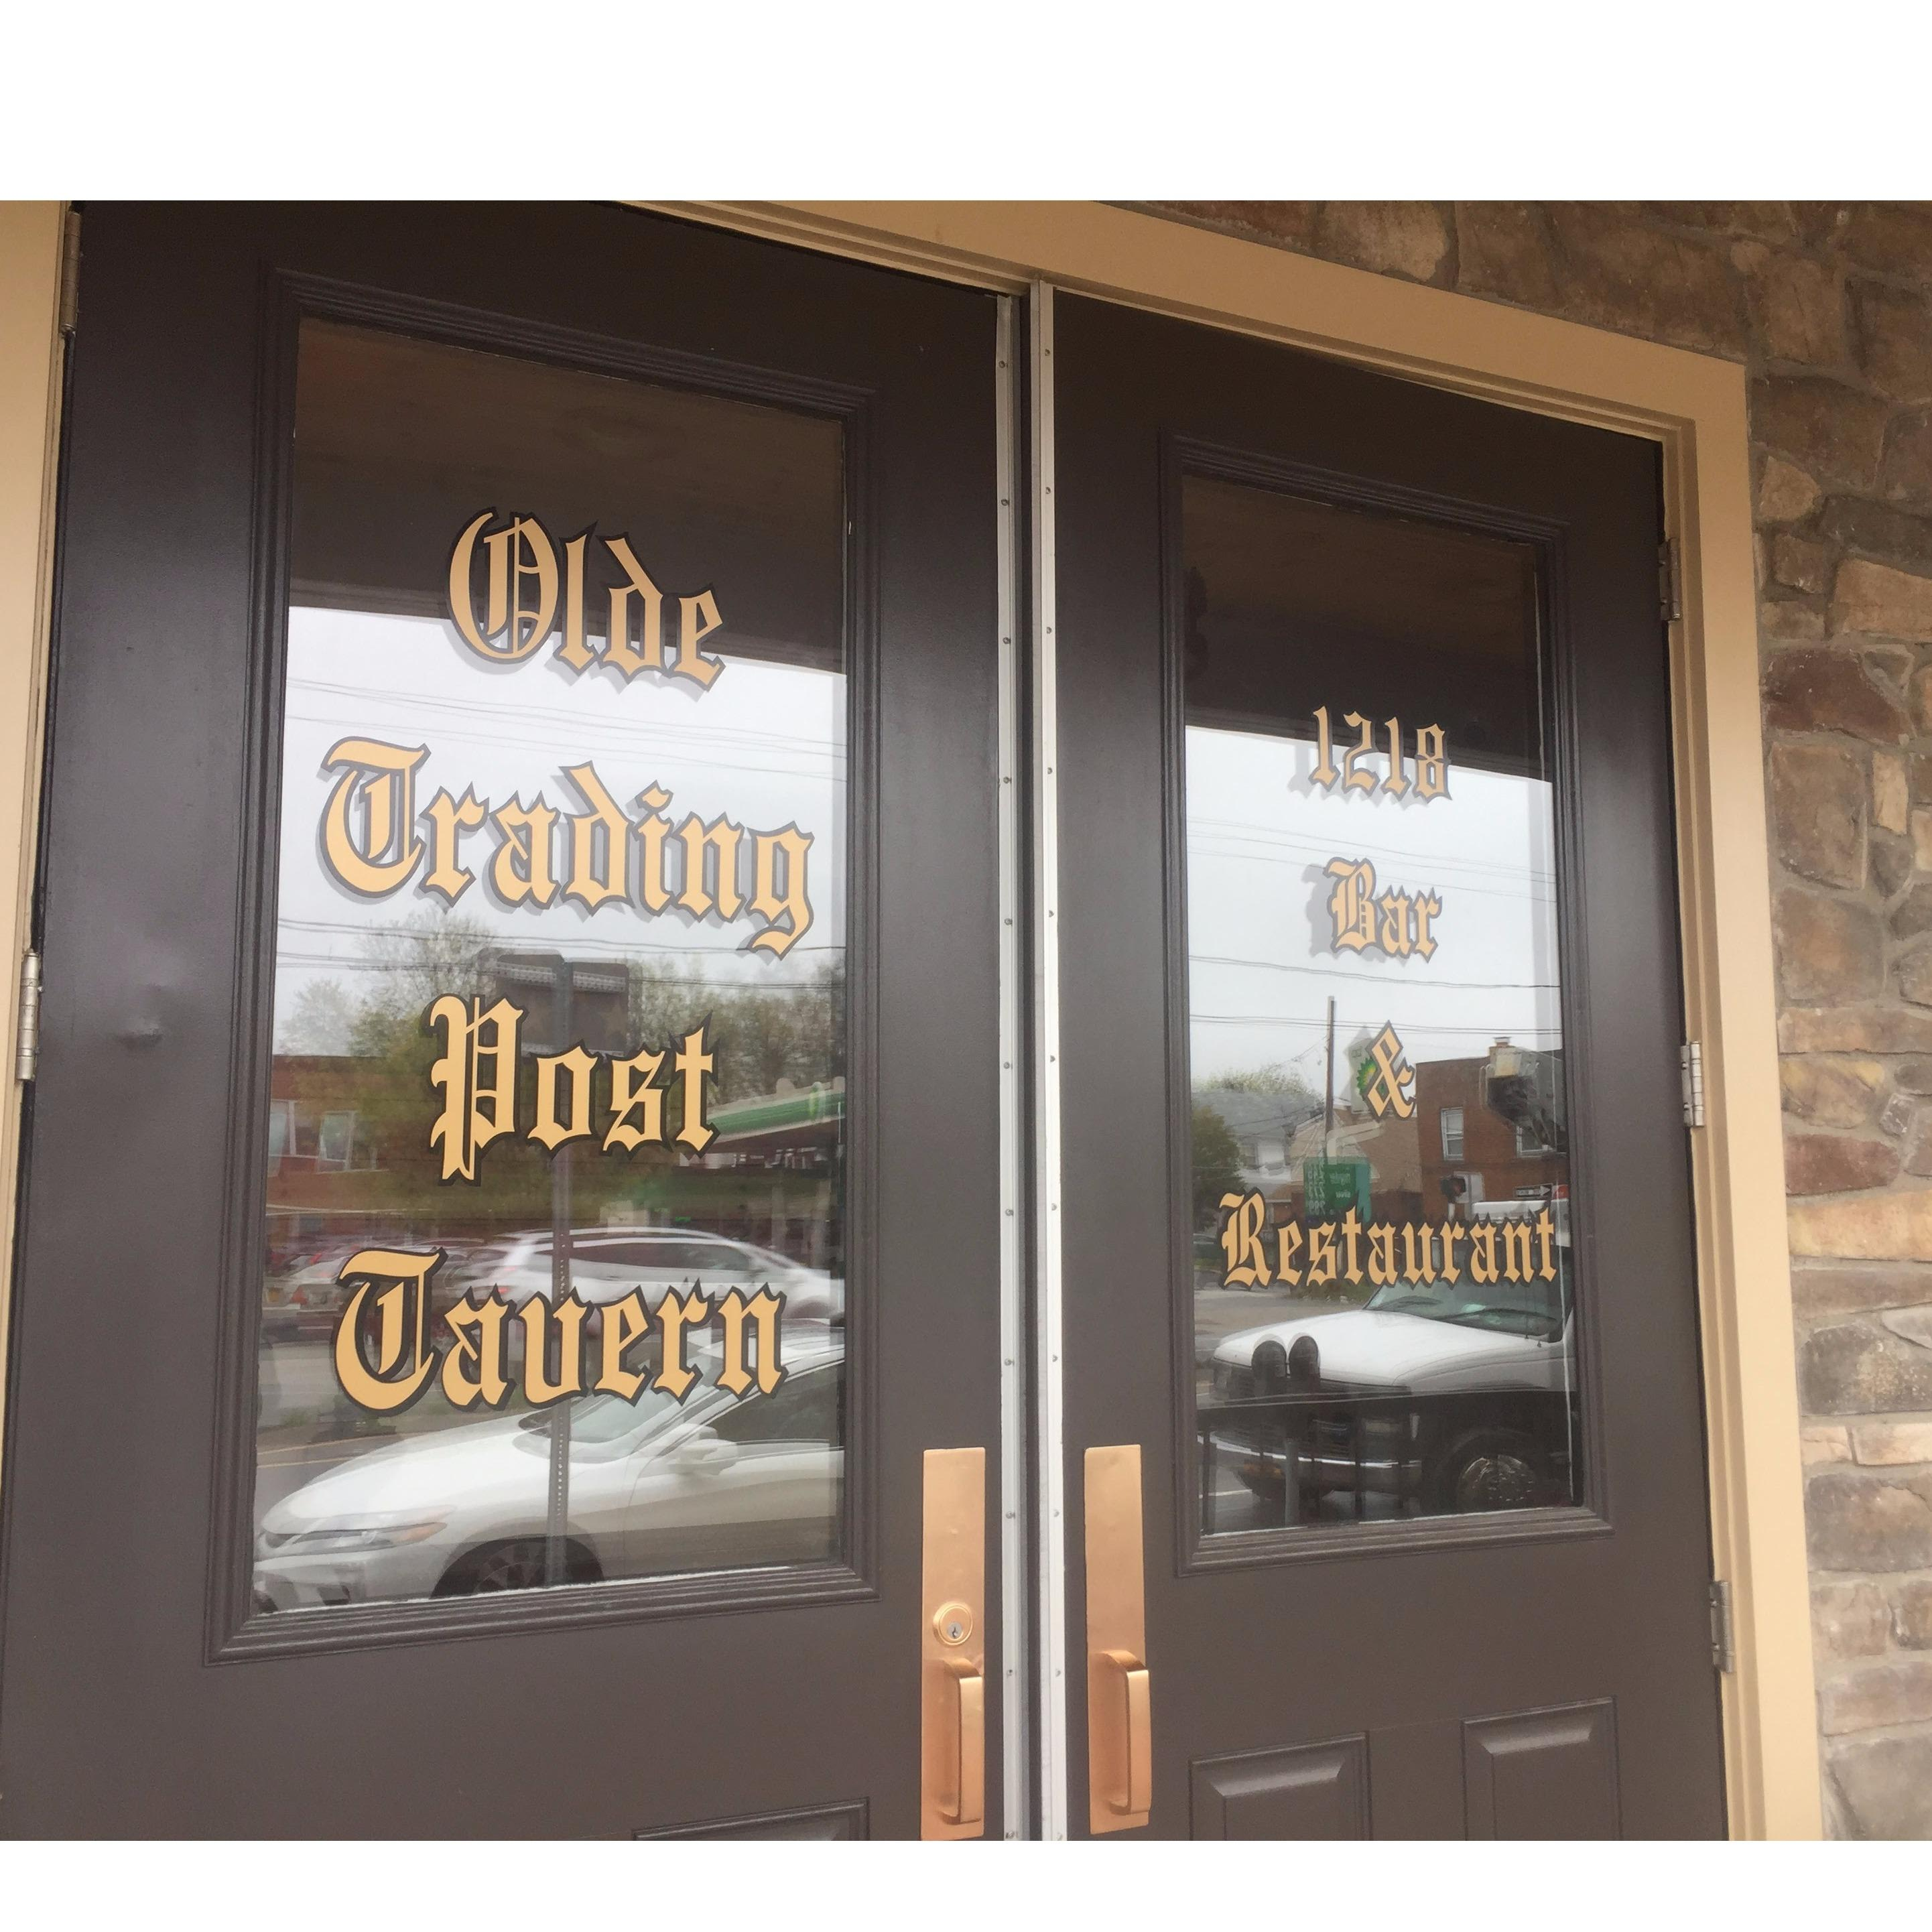 Olde Trading Post